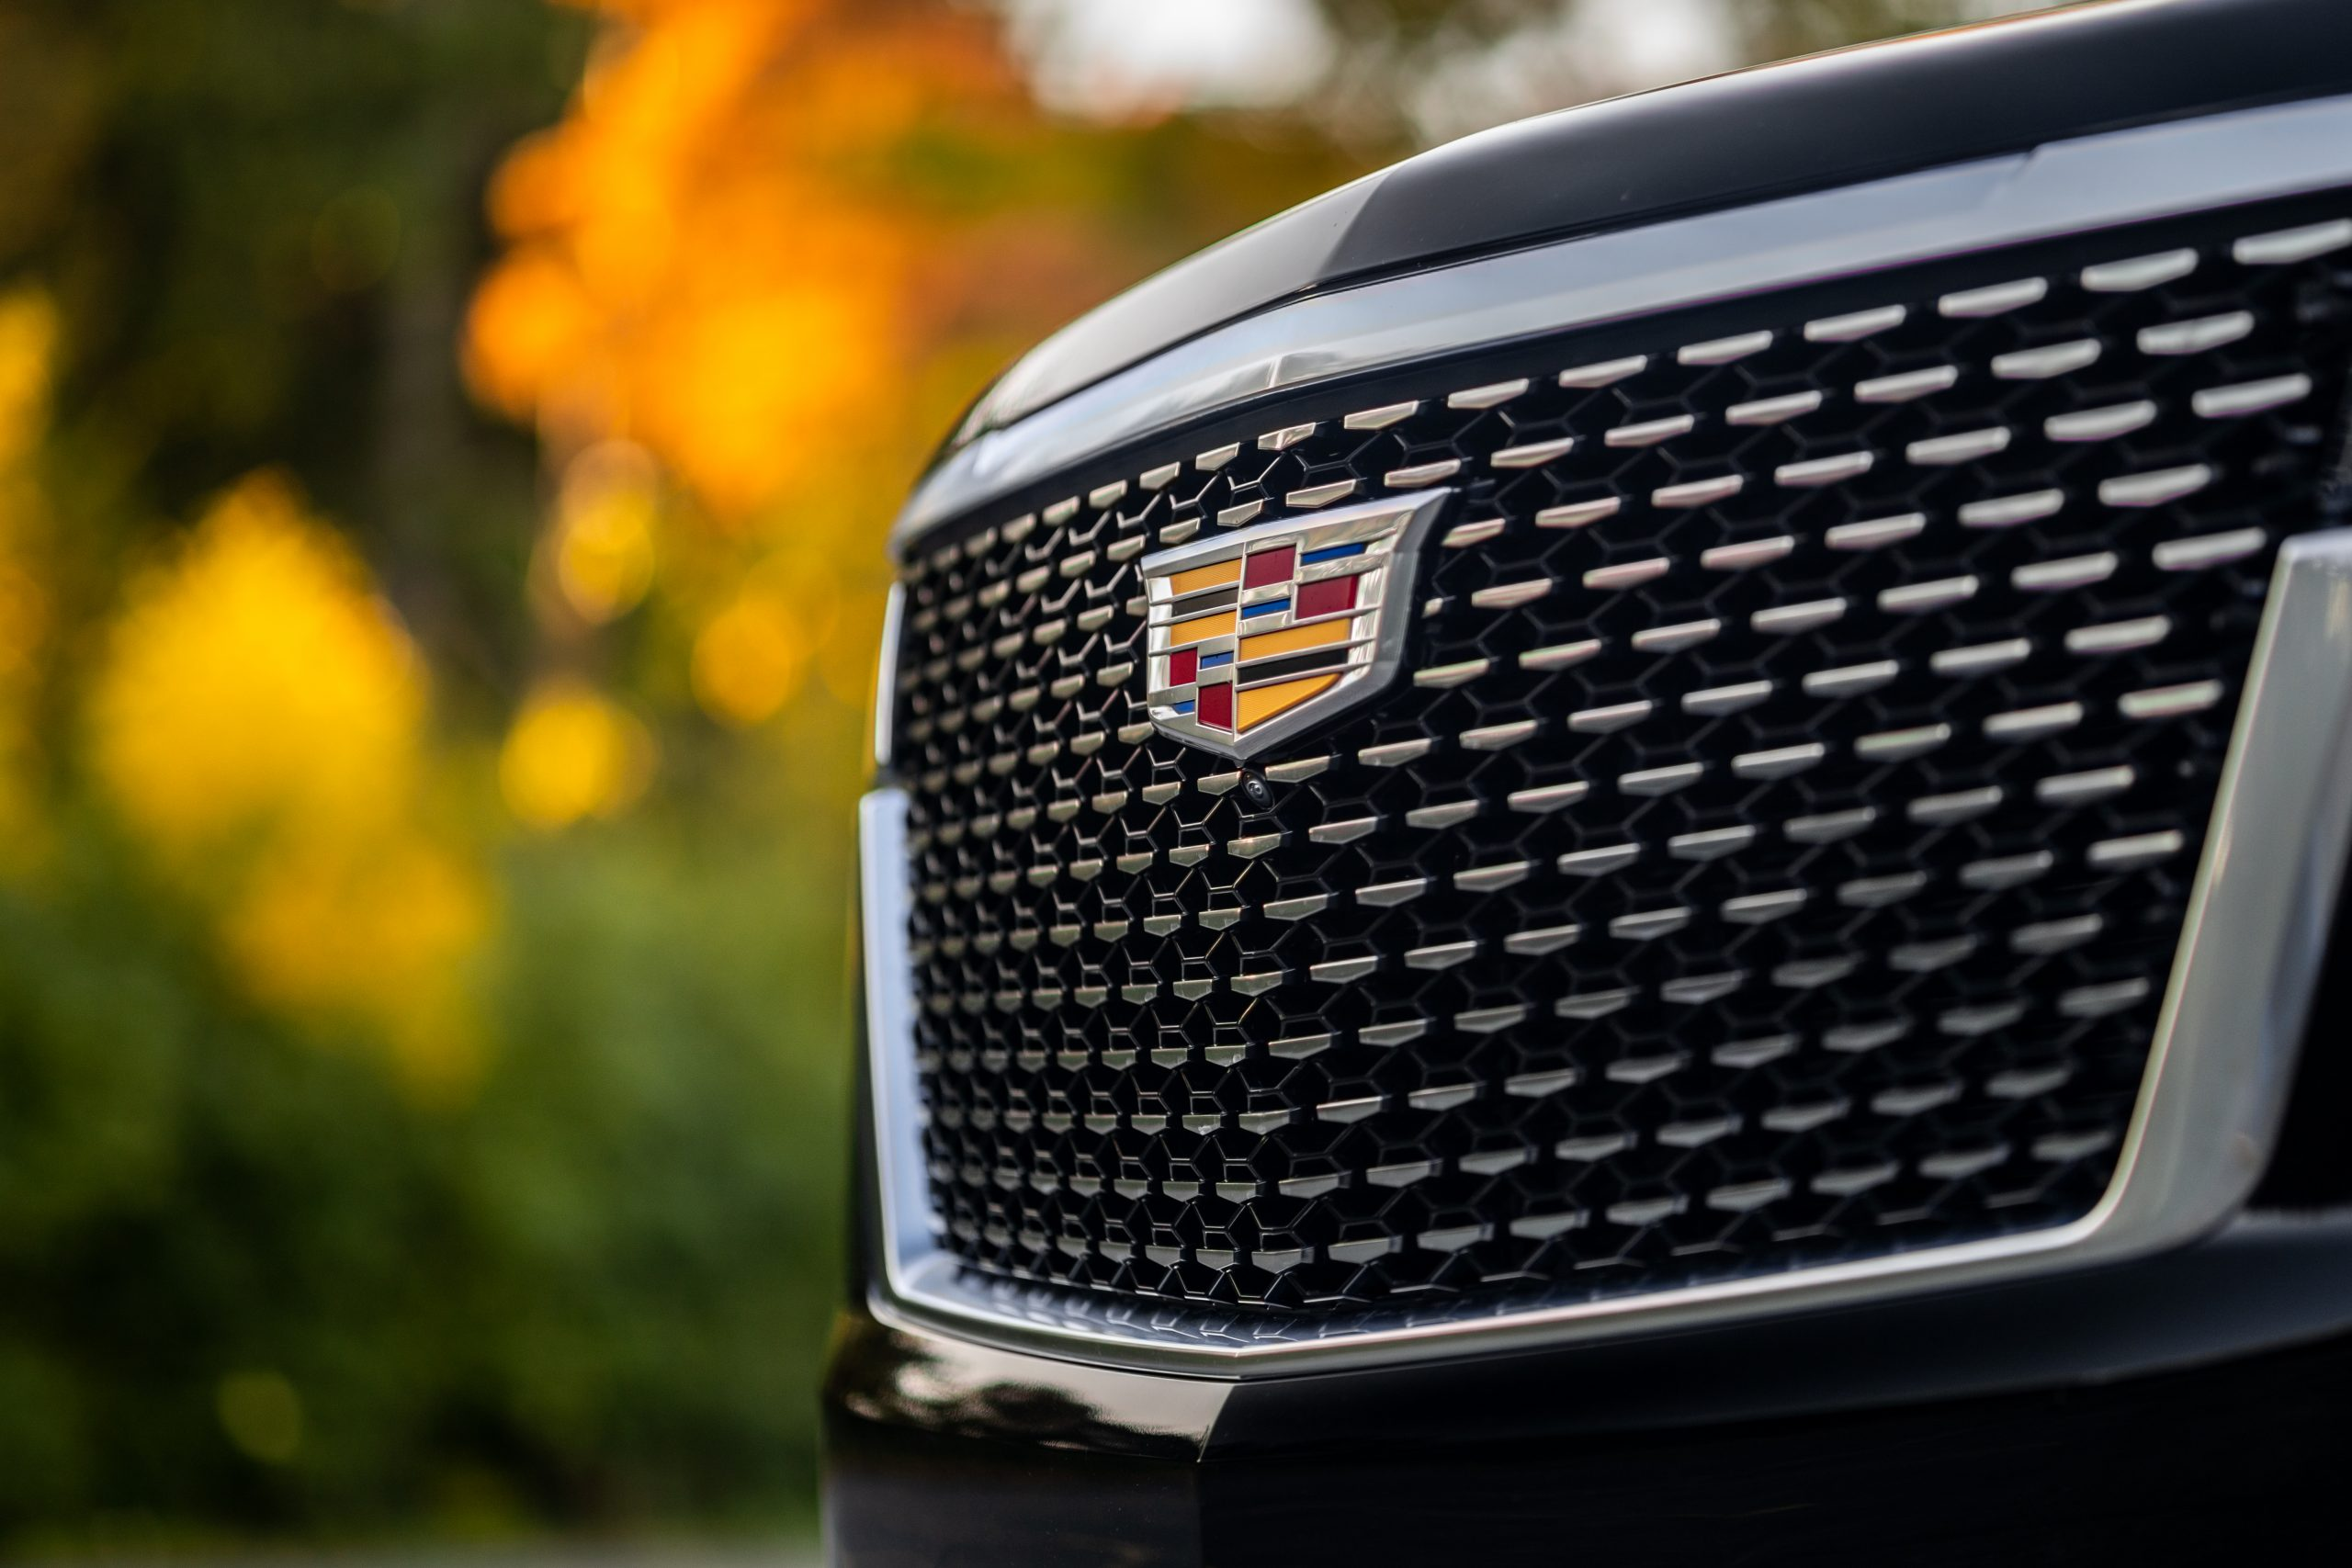 cadillac escalade front grille close up